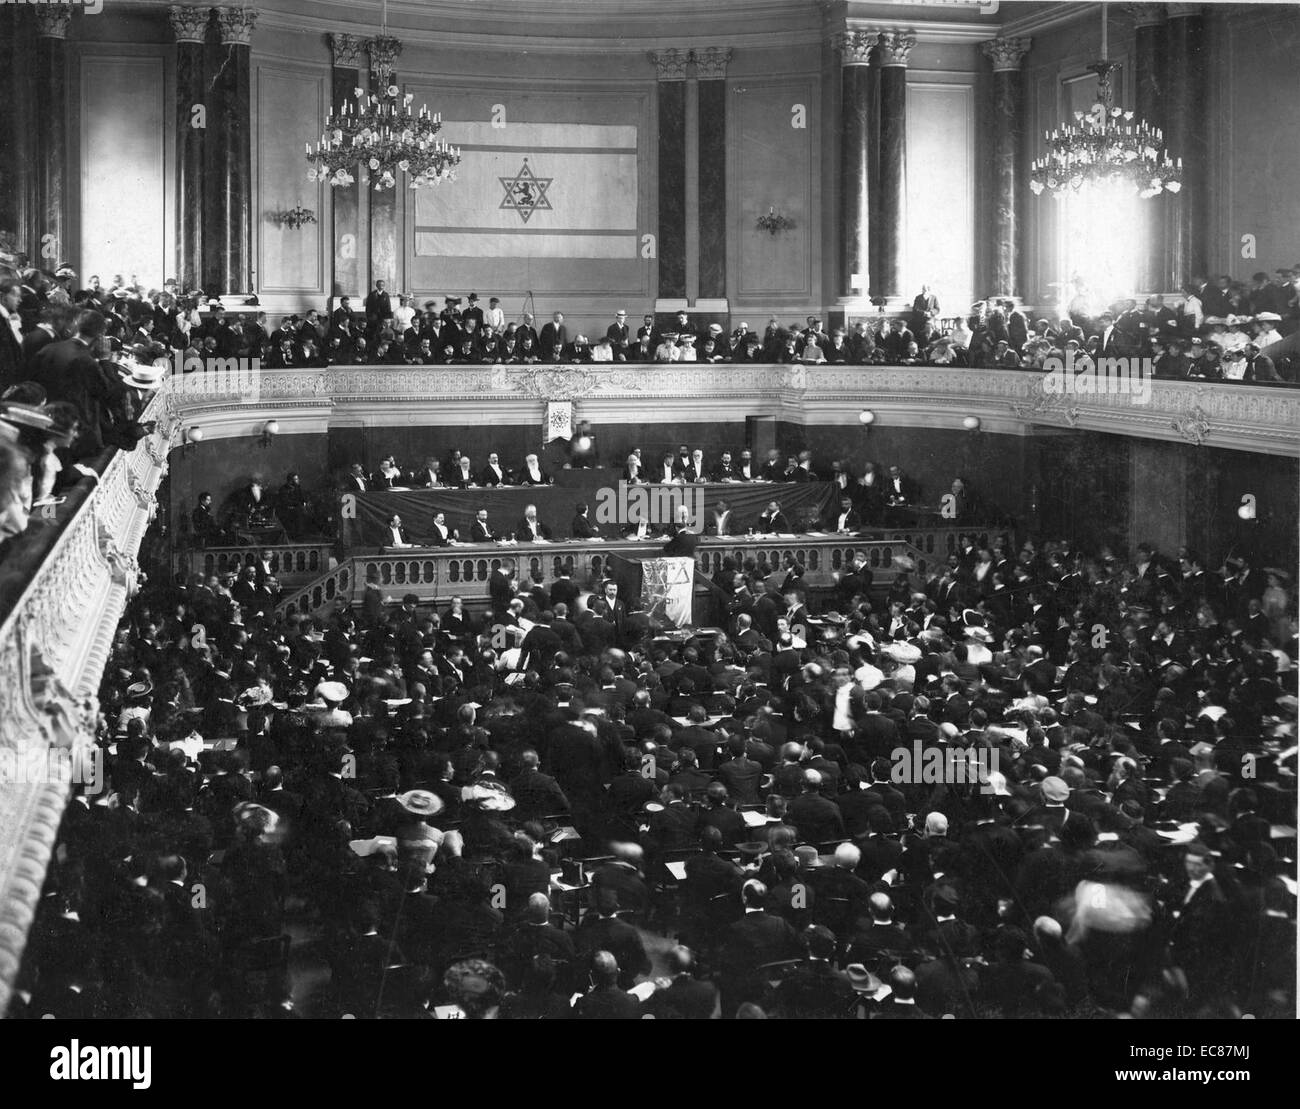 Photograph of the Zionist Congress Basle - Stock Image